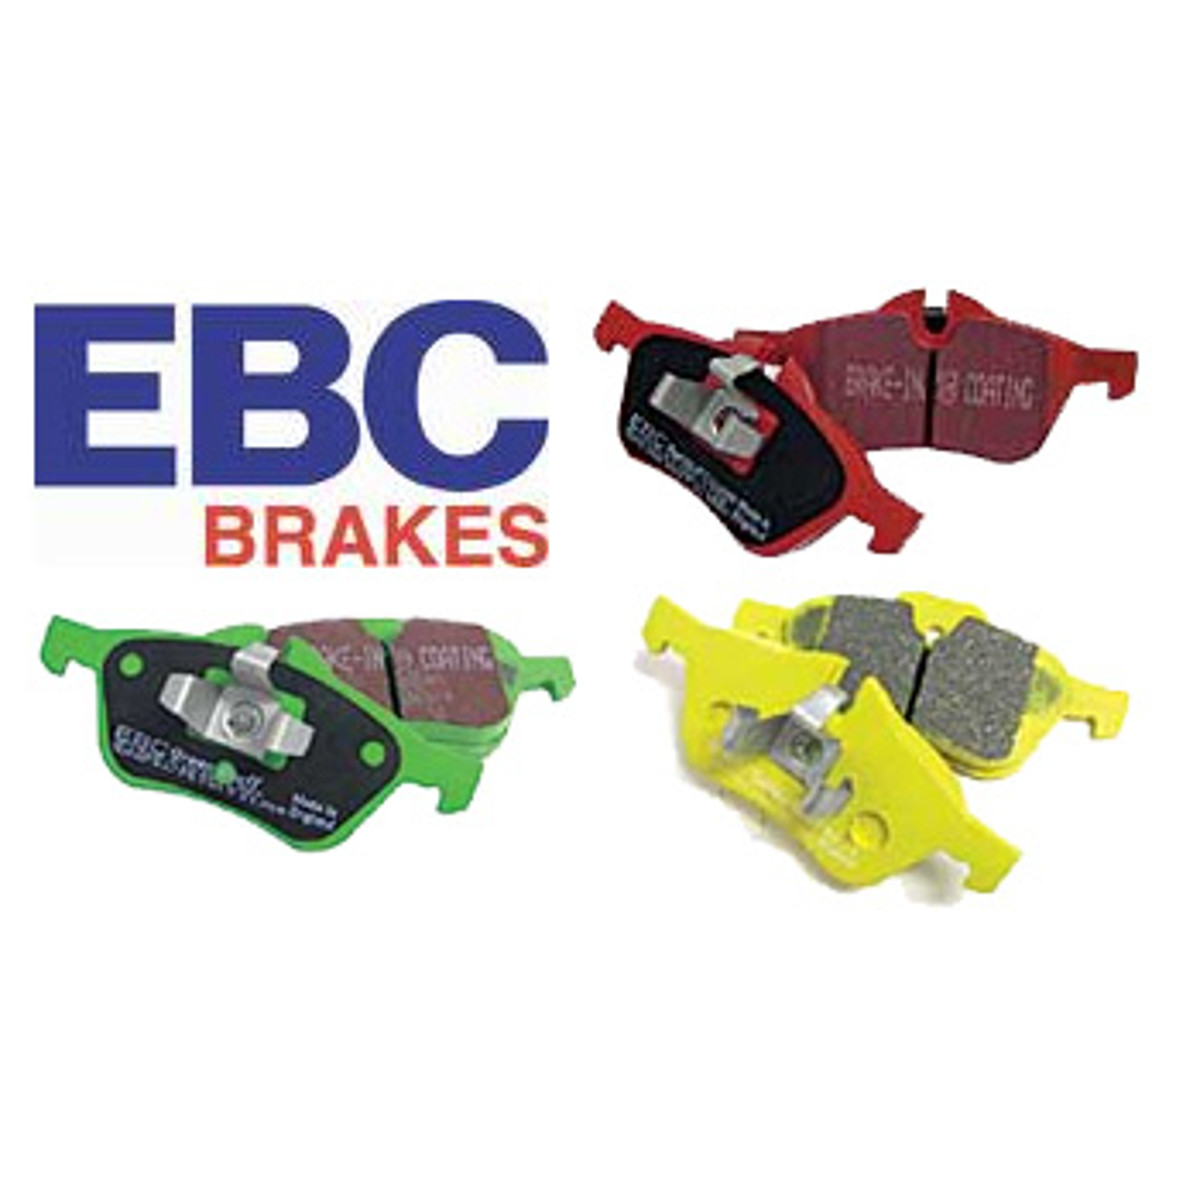 Ebc Brake Pads >> Ebc Brake Pads Red Yellow Blue Stuff Prices Include Vat In Uk